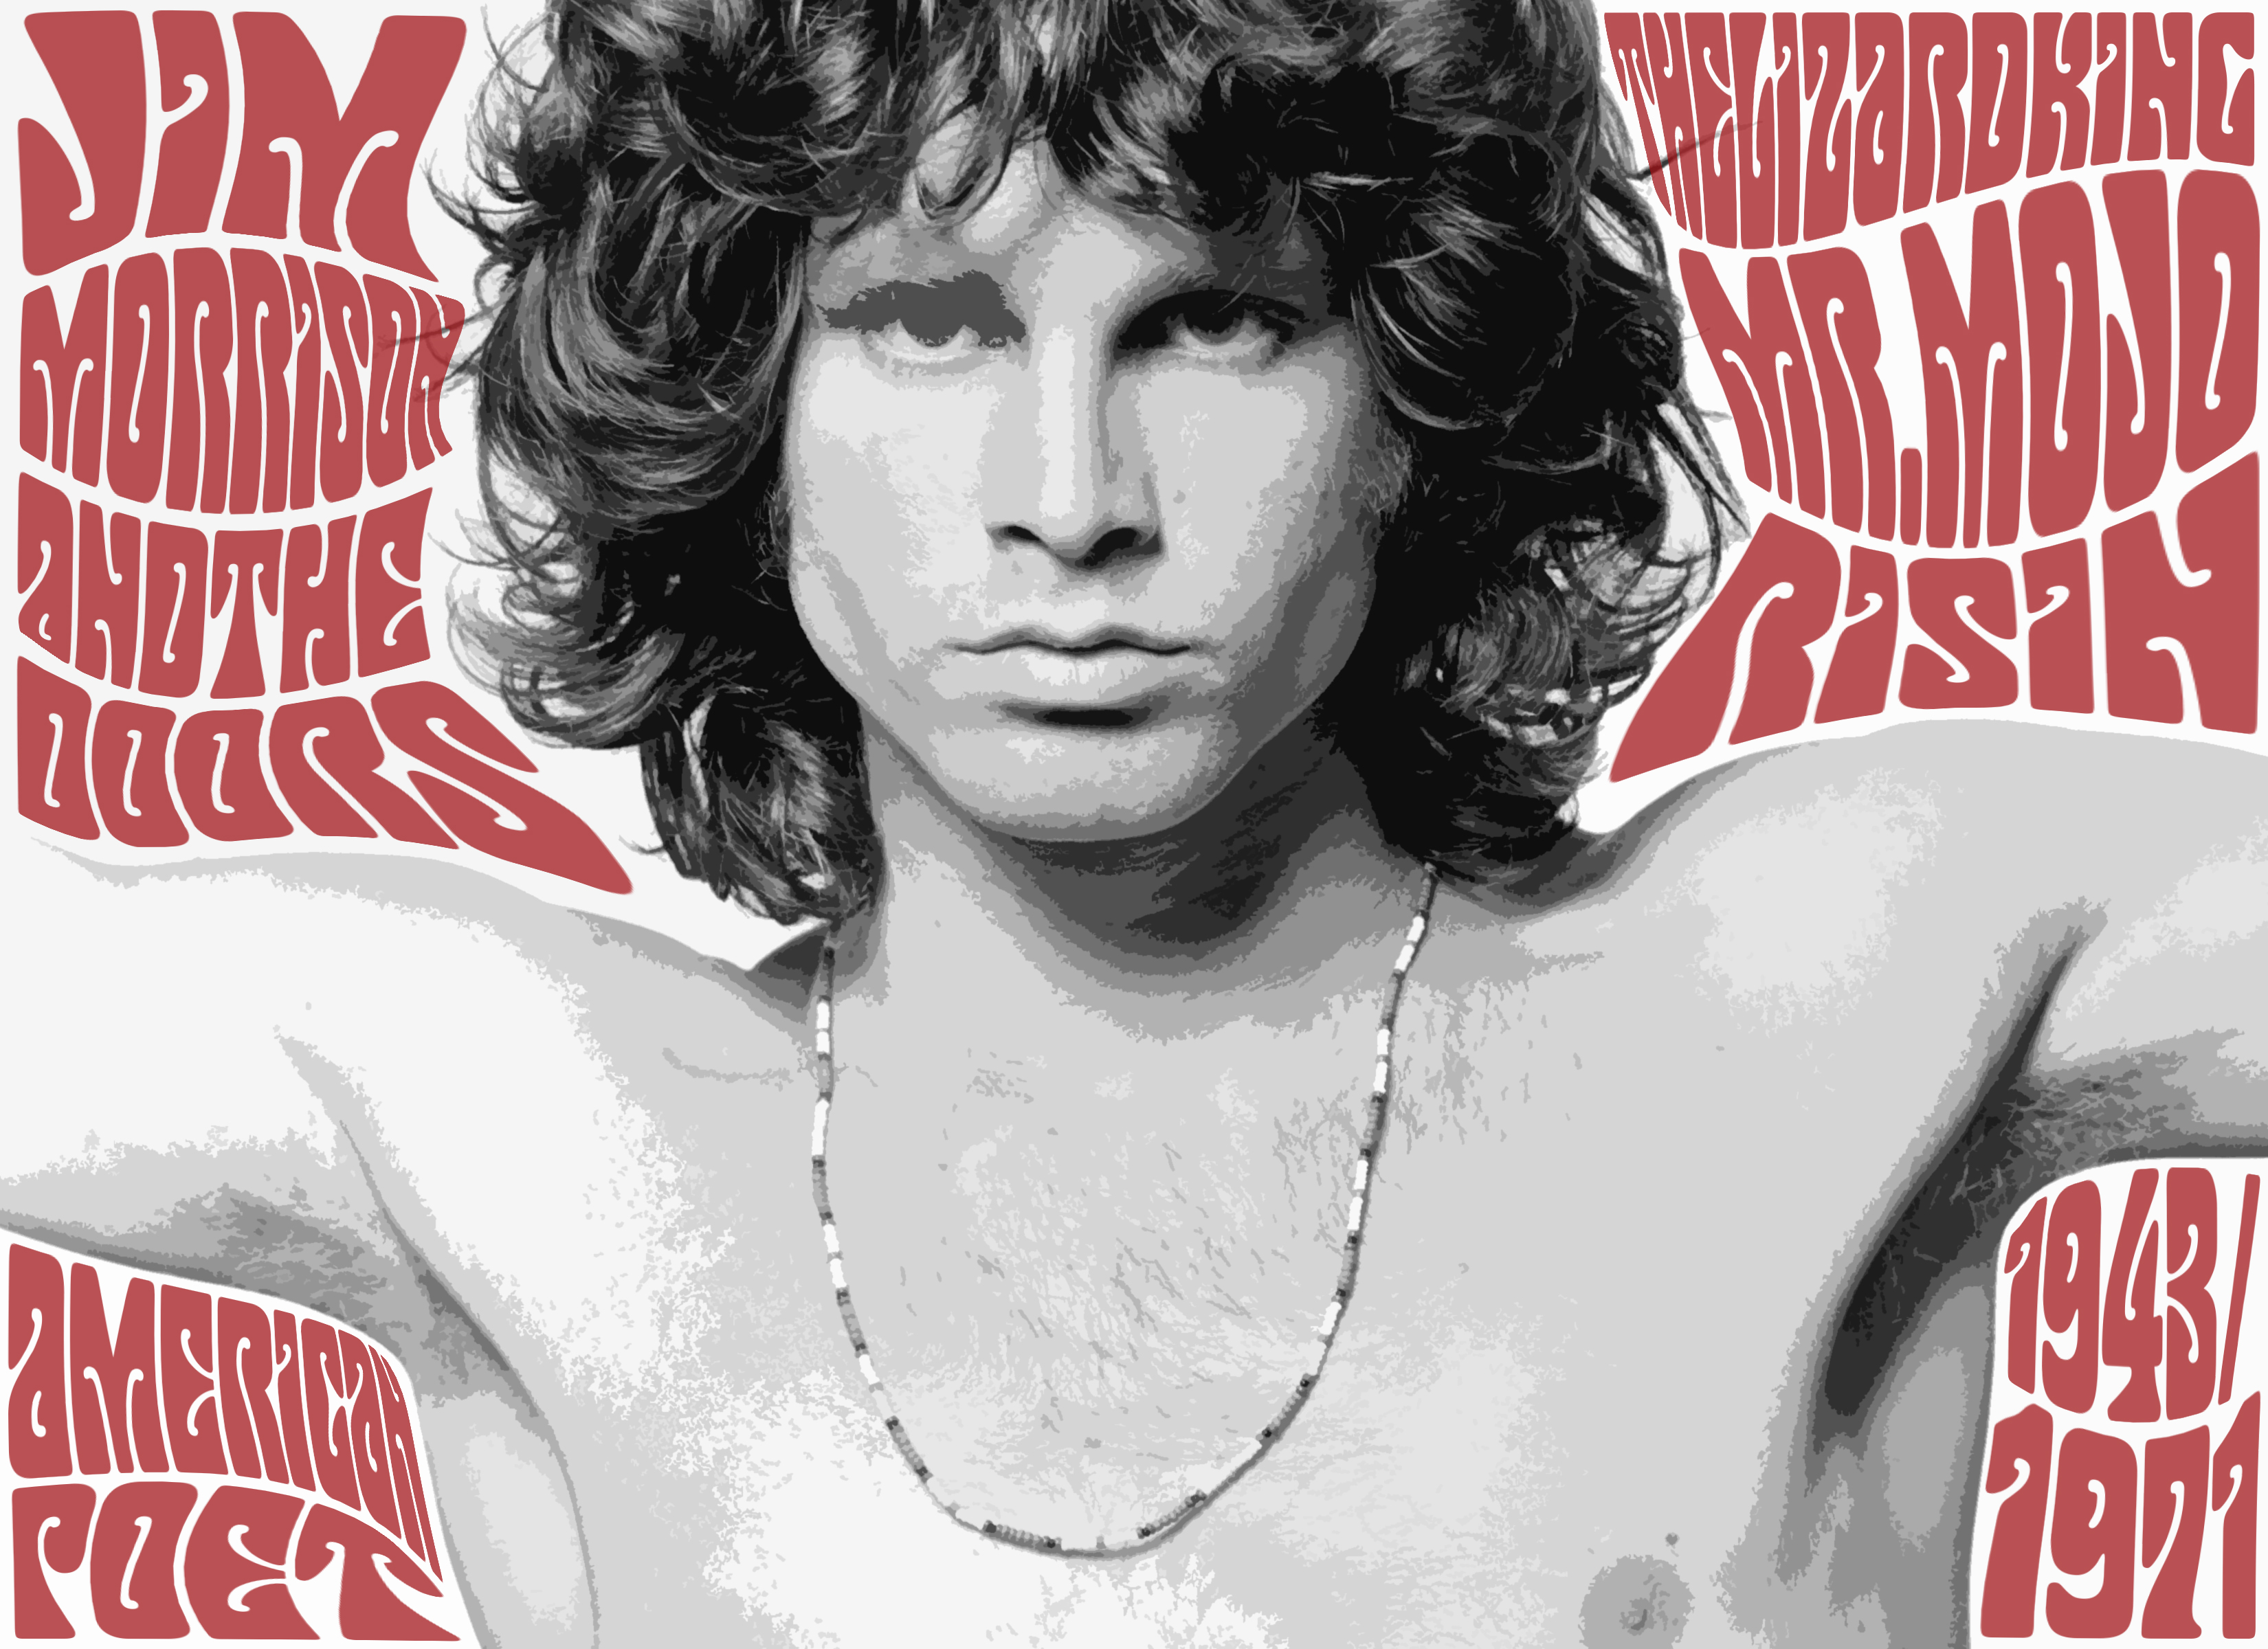 jim morrison thesis I wouldn't care so much about babitz having dated jim morrison—one of her admitted tar babies—or having posed with duchamp, except that her love life plays nicely into her game on the page: one of sharp, funny, memoiristic essays set in the late sixties and seventies los angeles scene.